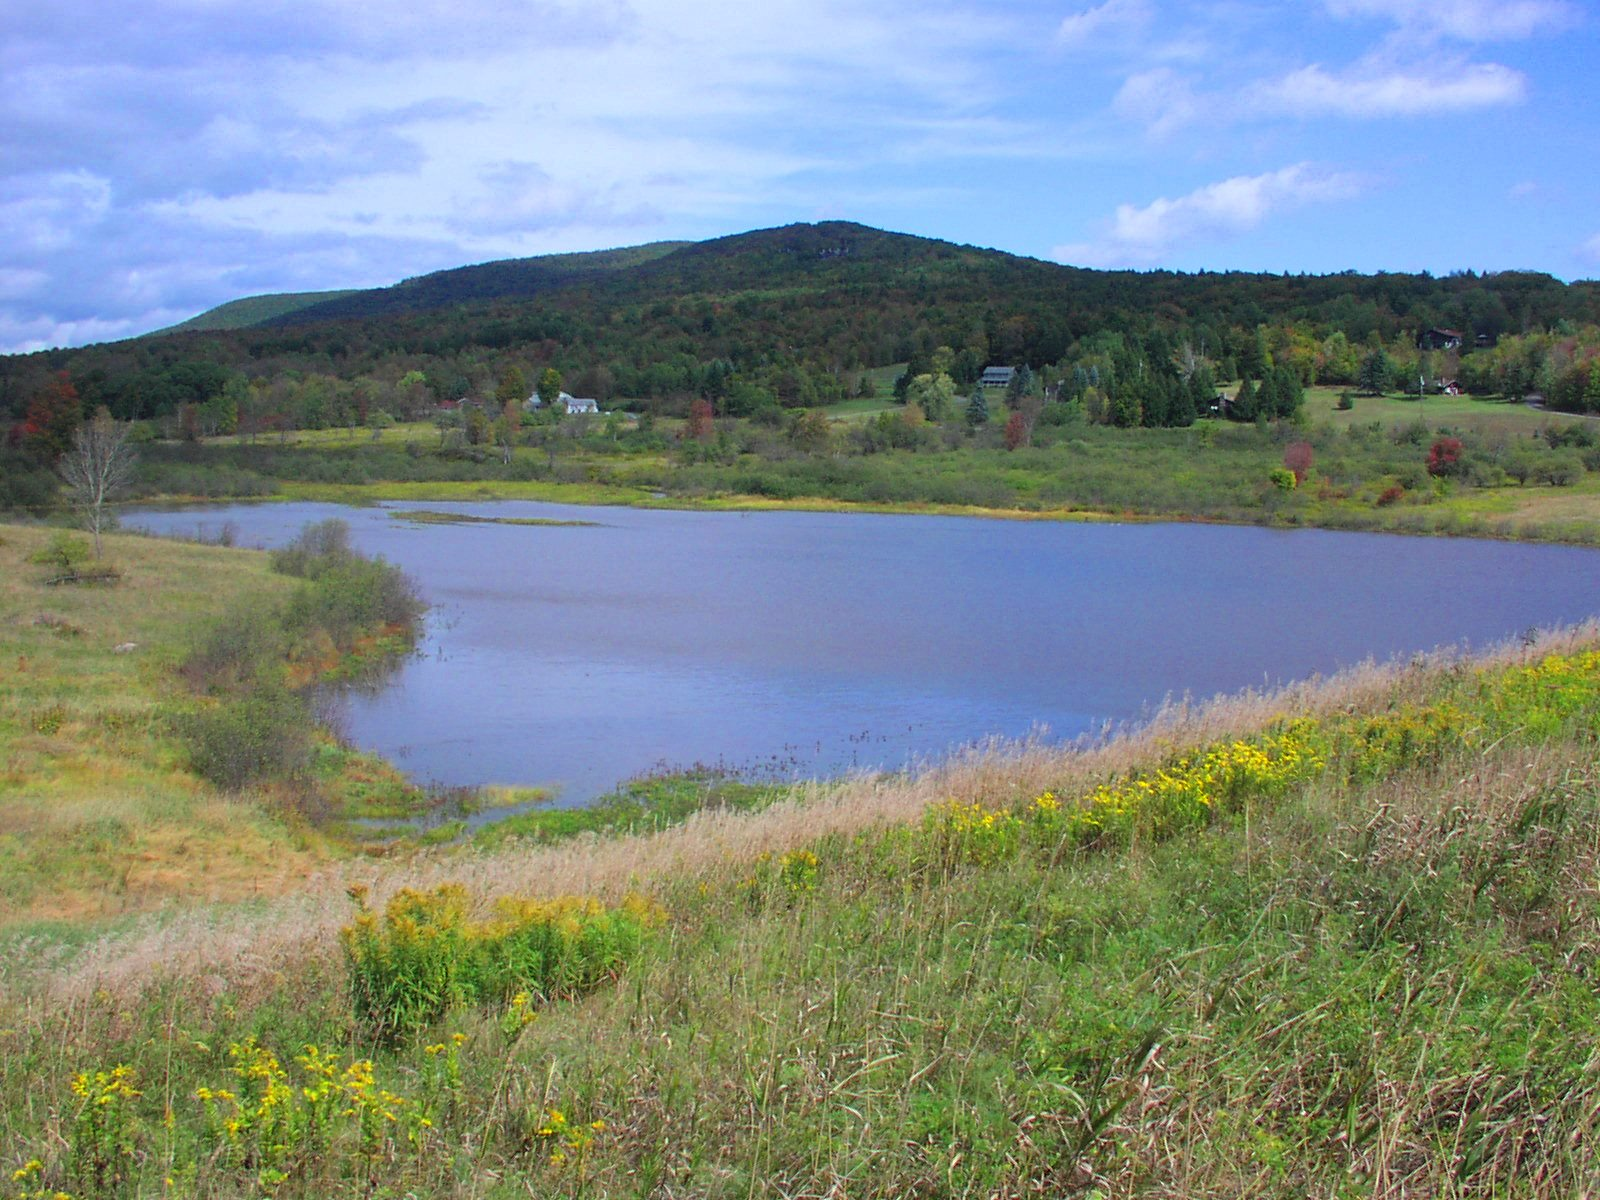 One of many floodwater control dams in New York State